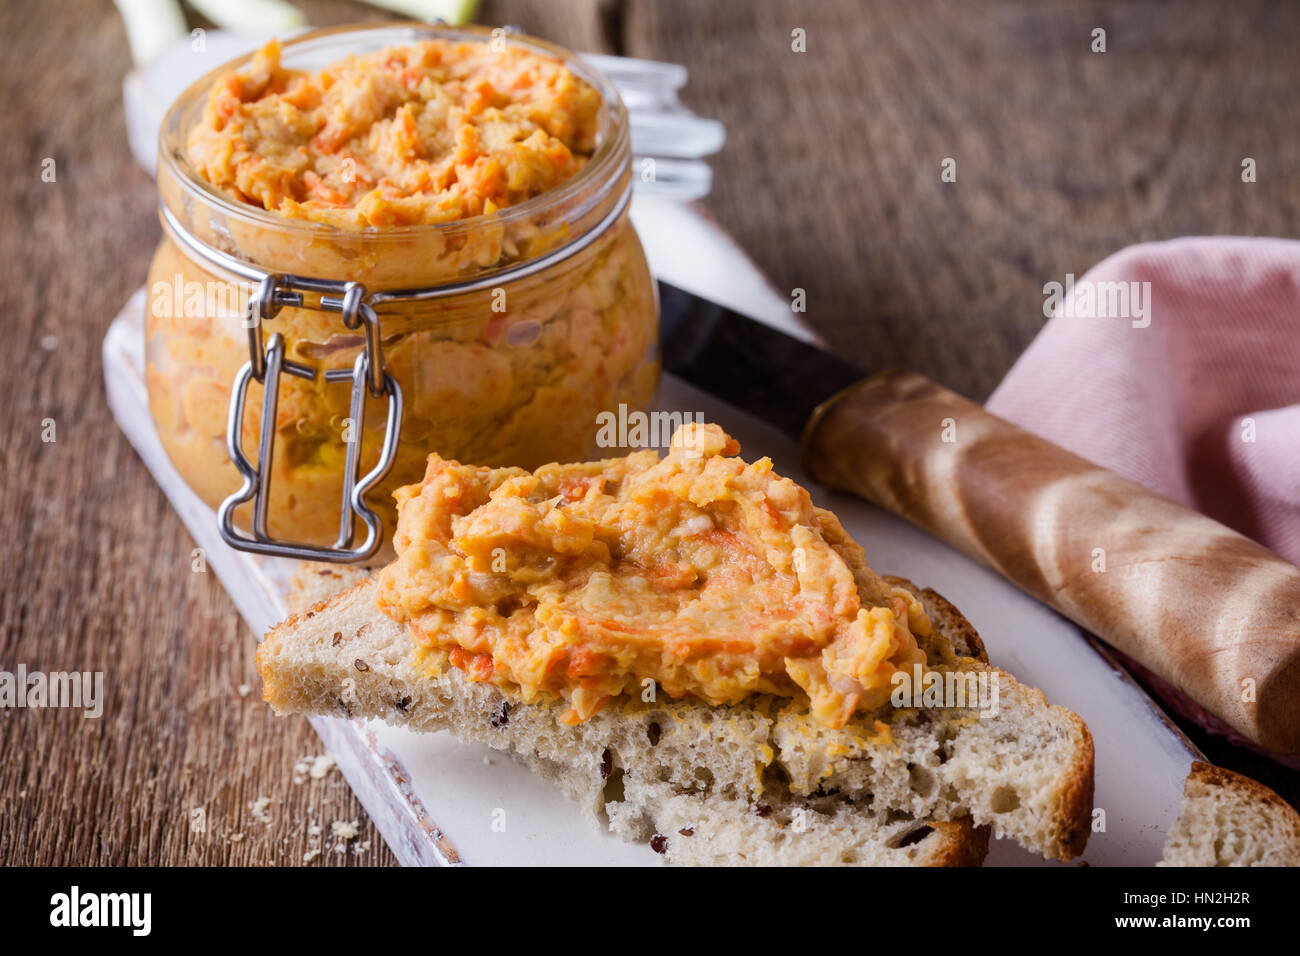 Homemade bean paste, Sandwiches with vegan pate on whole wheat bread. Dip of white beans in glass jar on rustic Stock Photo